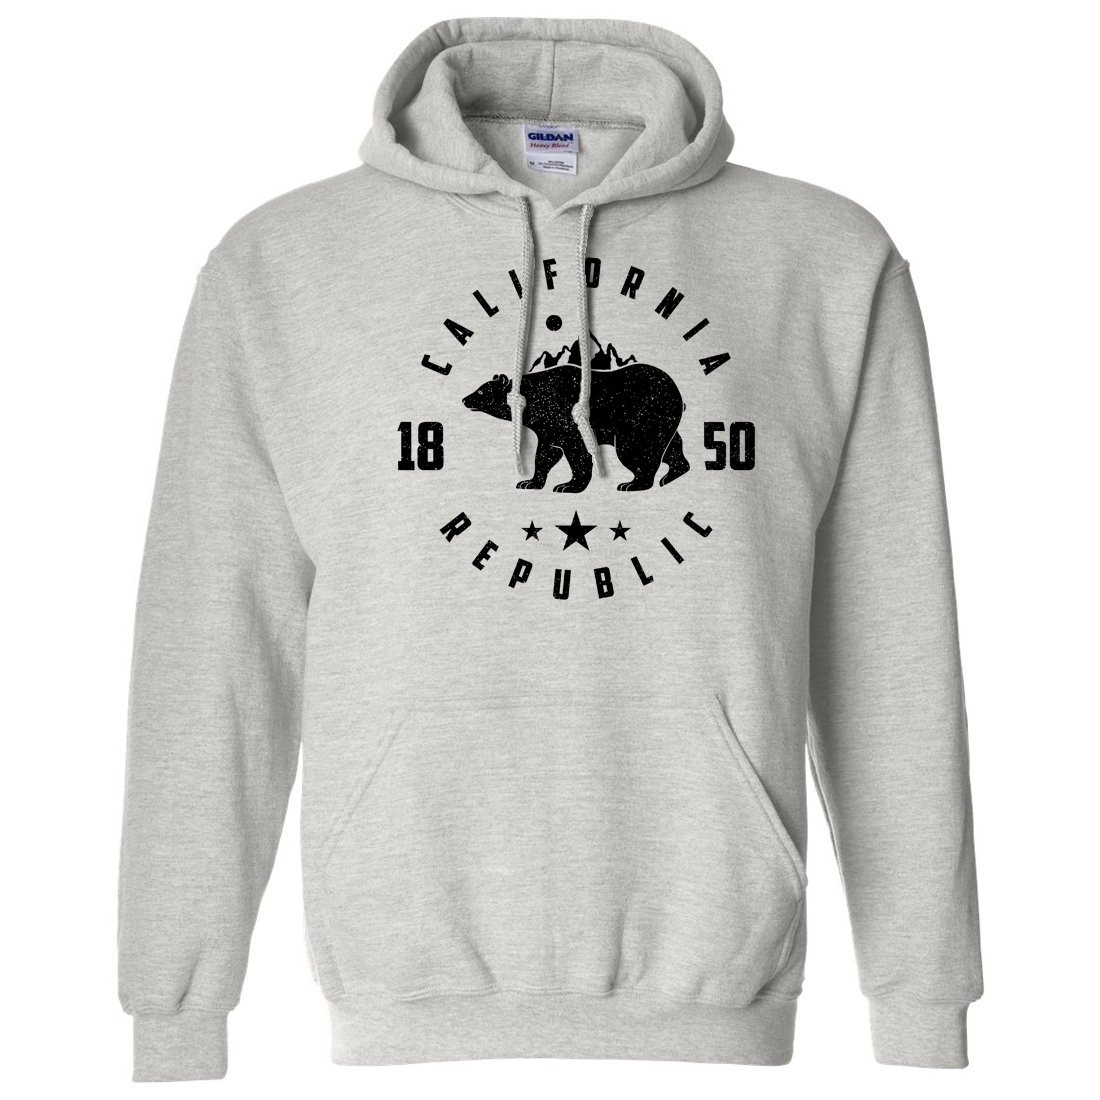 California Republic Mountains Sweatshirt Hoodie